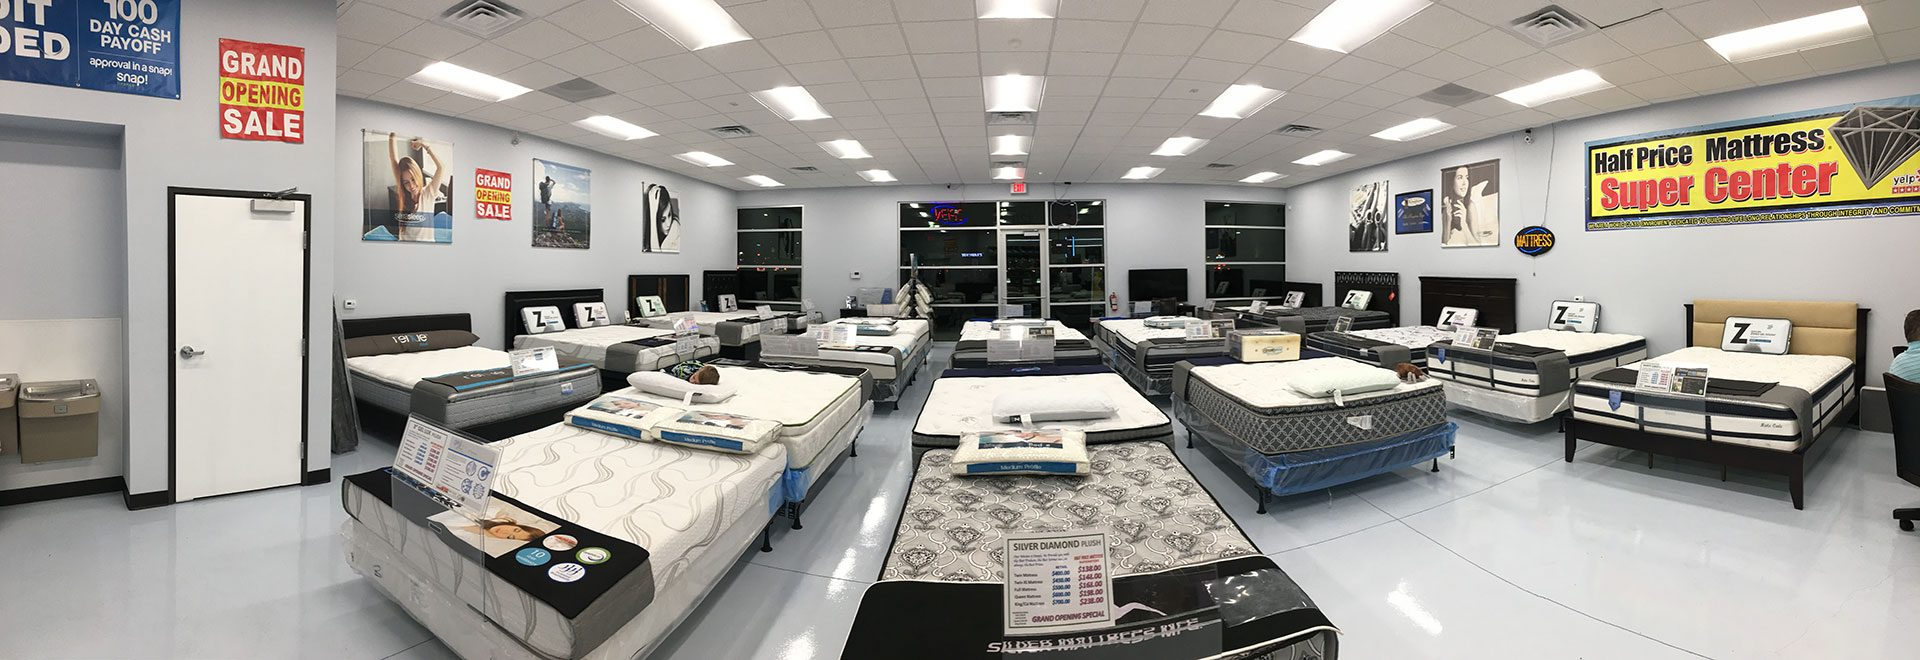 Home Las Vegas Discount Mattresses Furniture